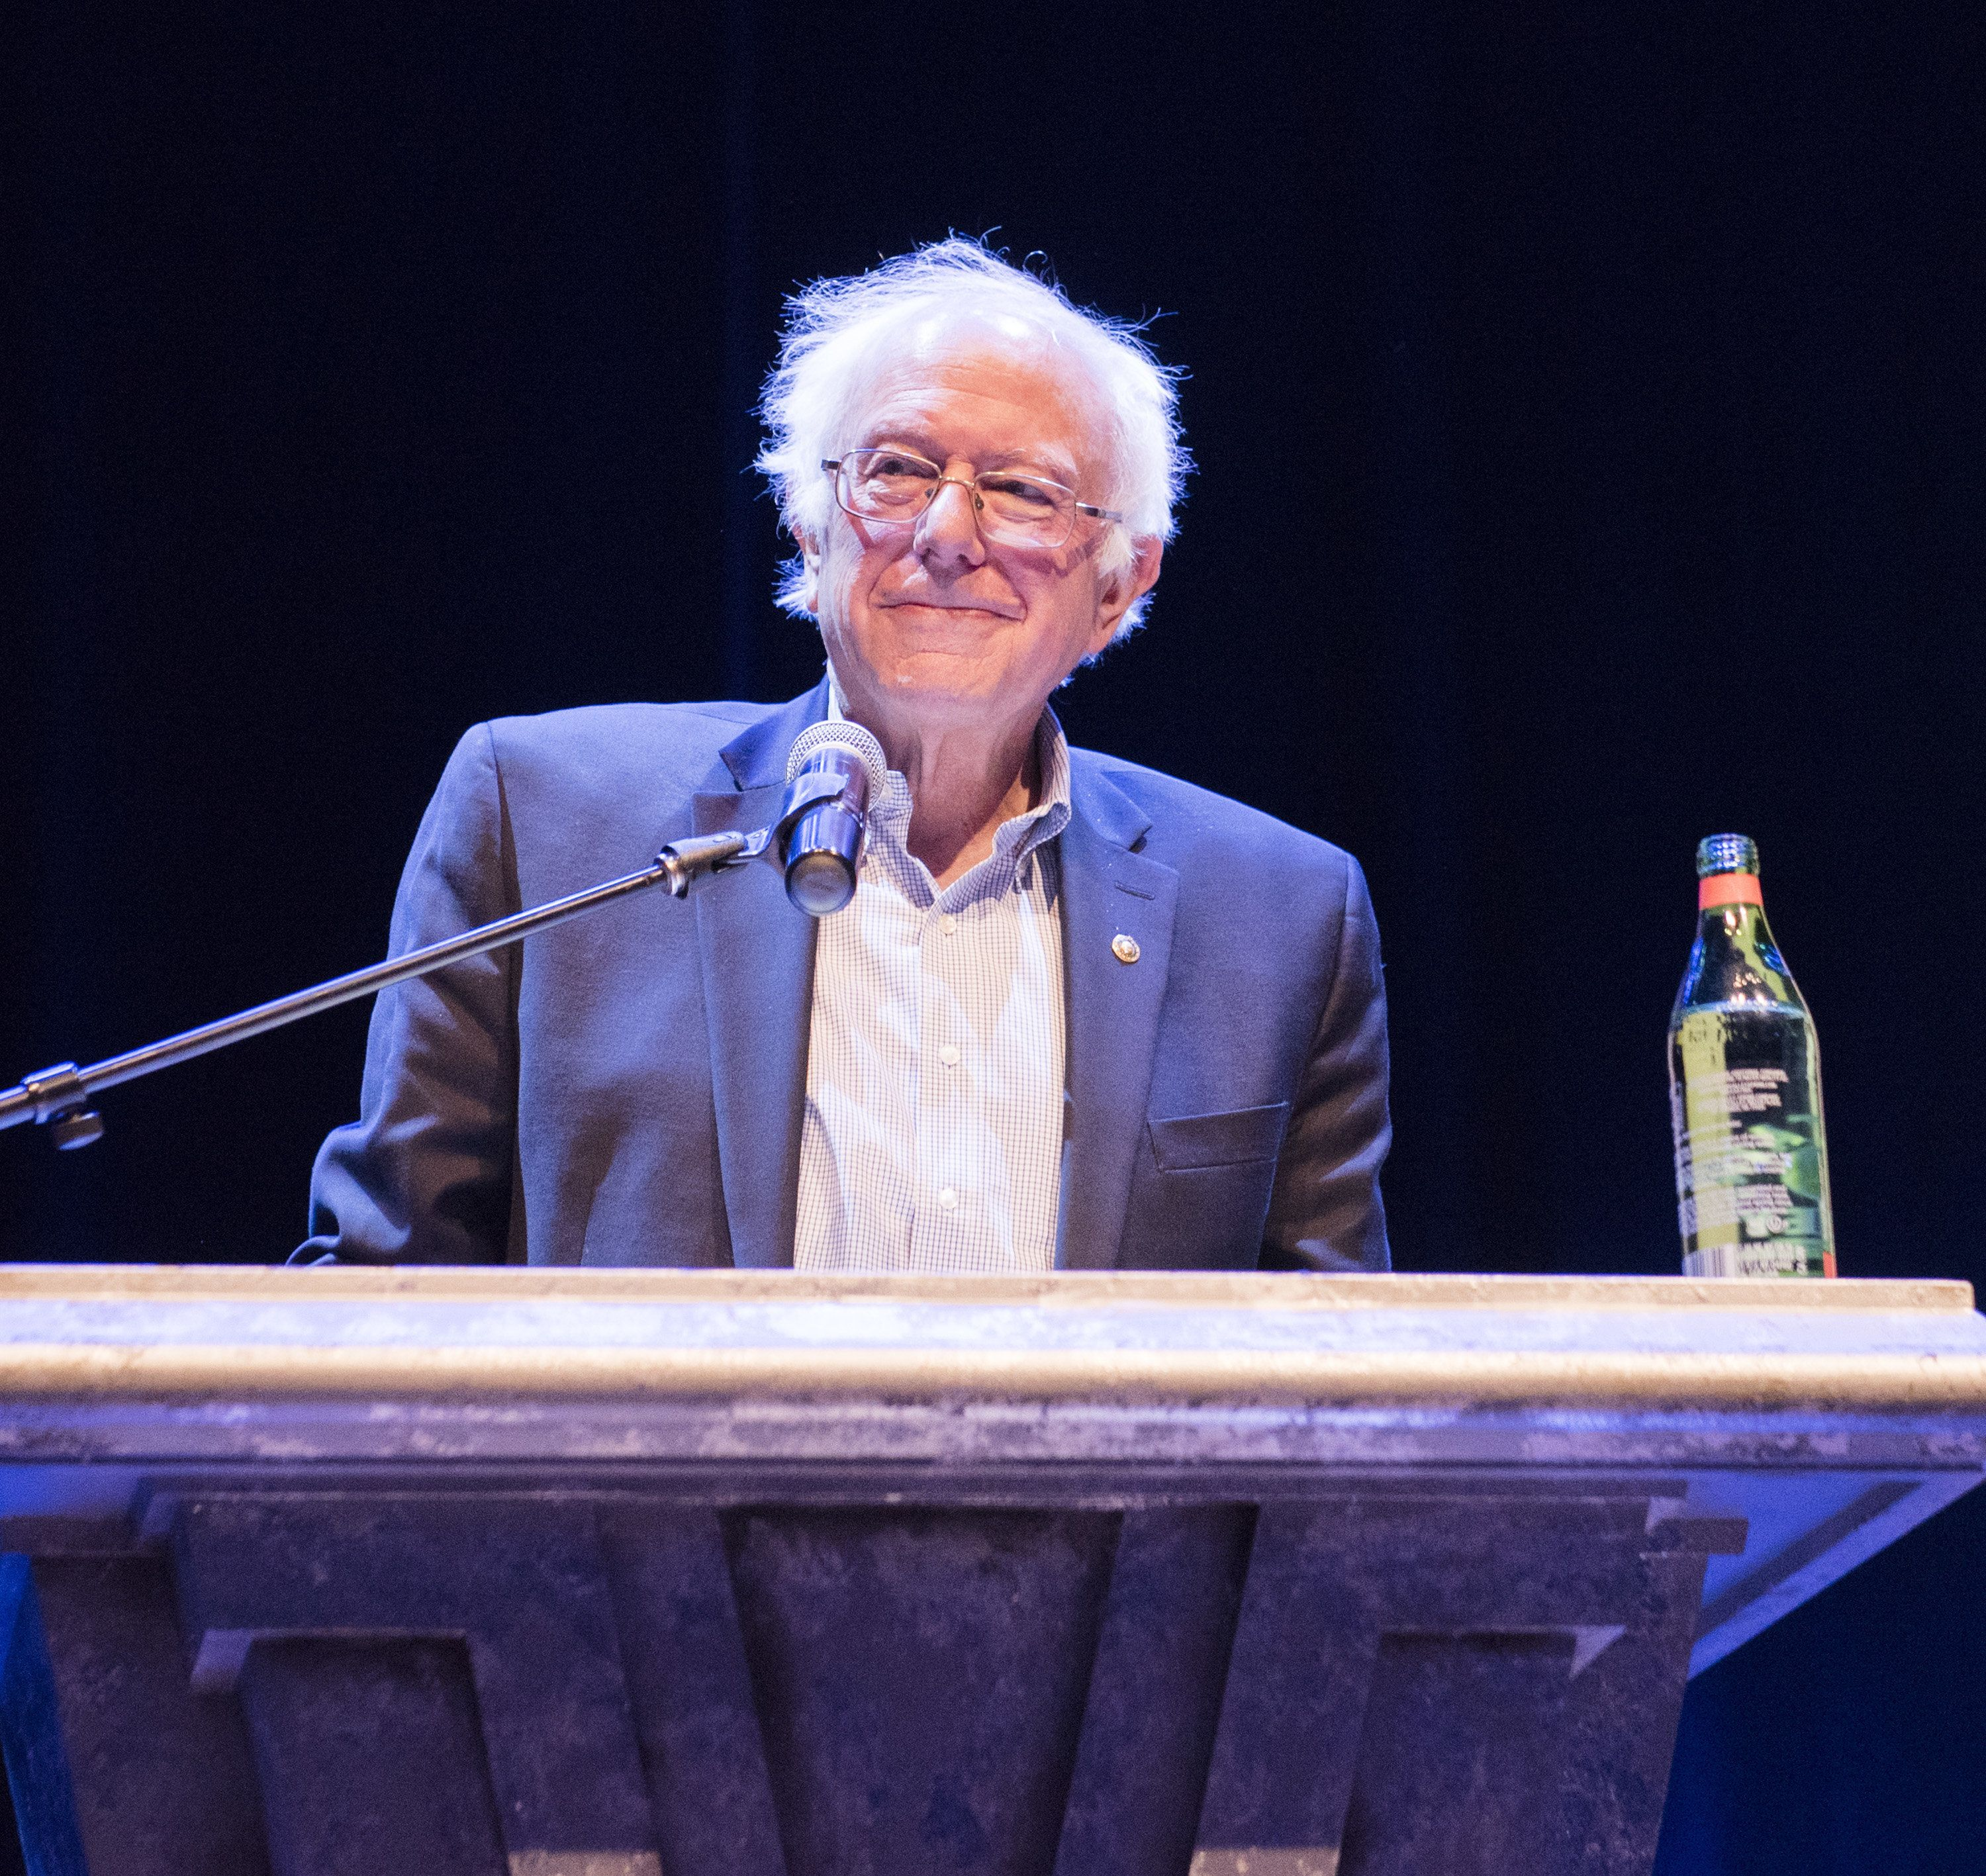 Sen. Bernie Sanders (I-Vt.) is hitting the road for Rob Quist, the banjo-playing Montana Democrat hoping to win the race for